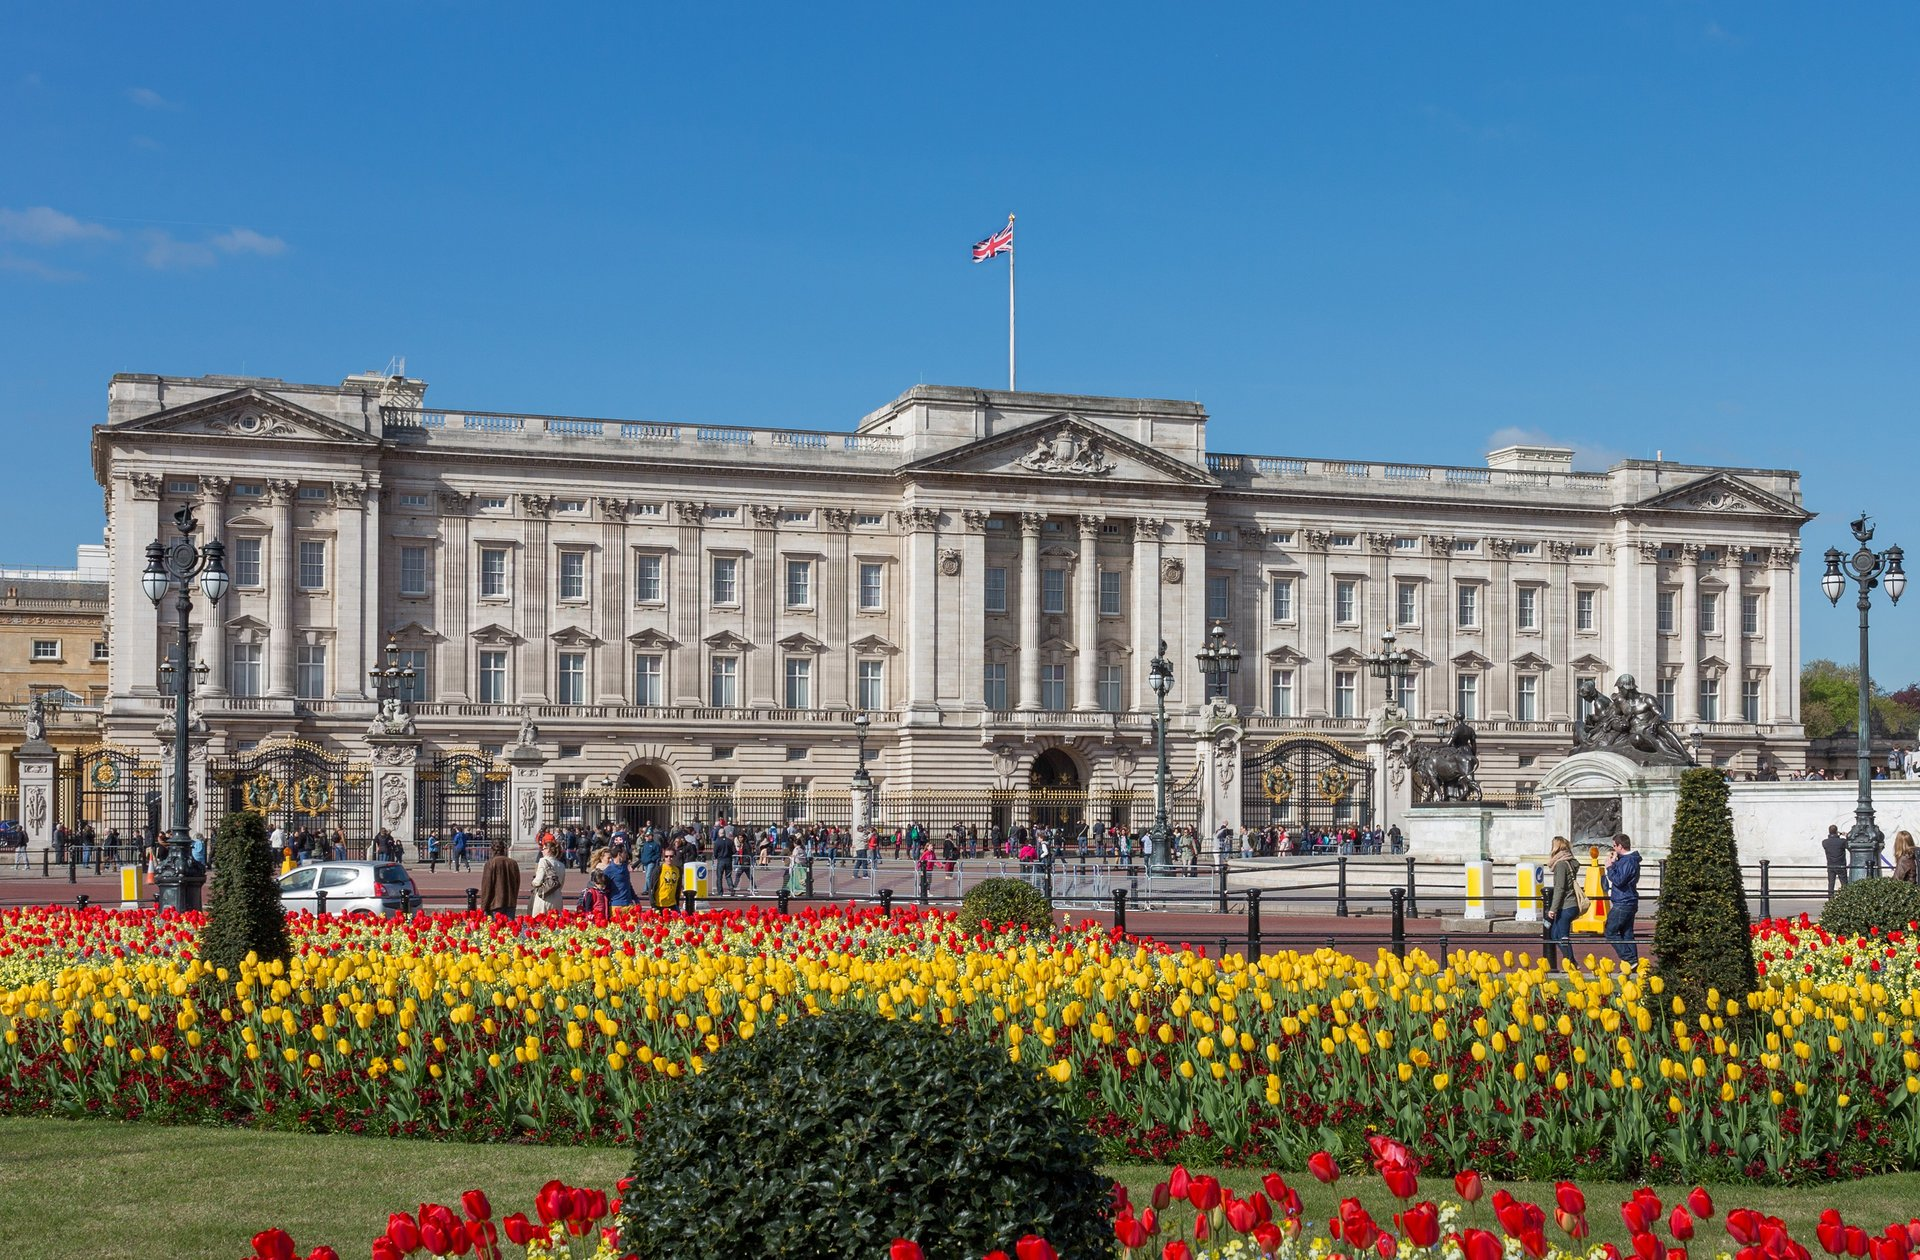 Buckingham Palace Tours in London 2020 - Best Time